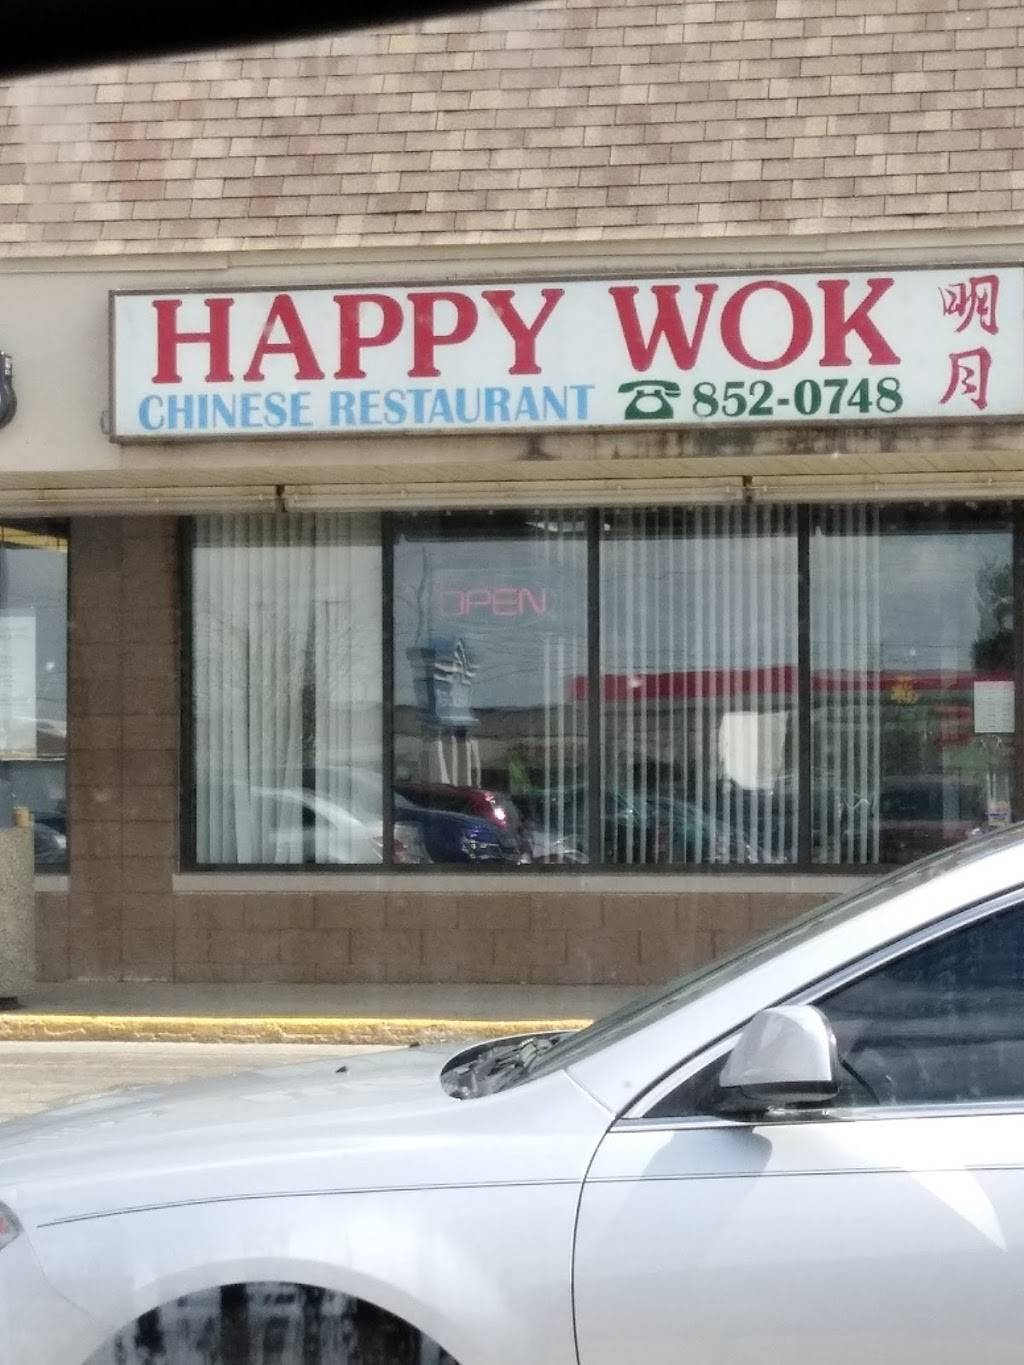 Happy Wok Chinese Restaurant | restaurant | 226 Lafayette St, London, OH 43140, USA | 7408520748 OR +1 740-852-0748